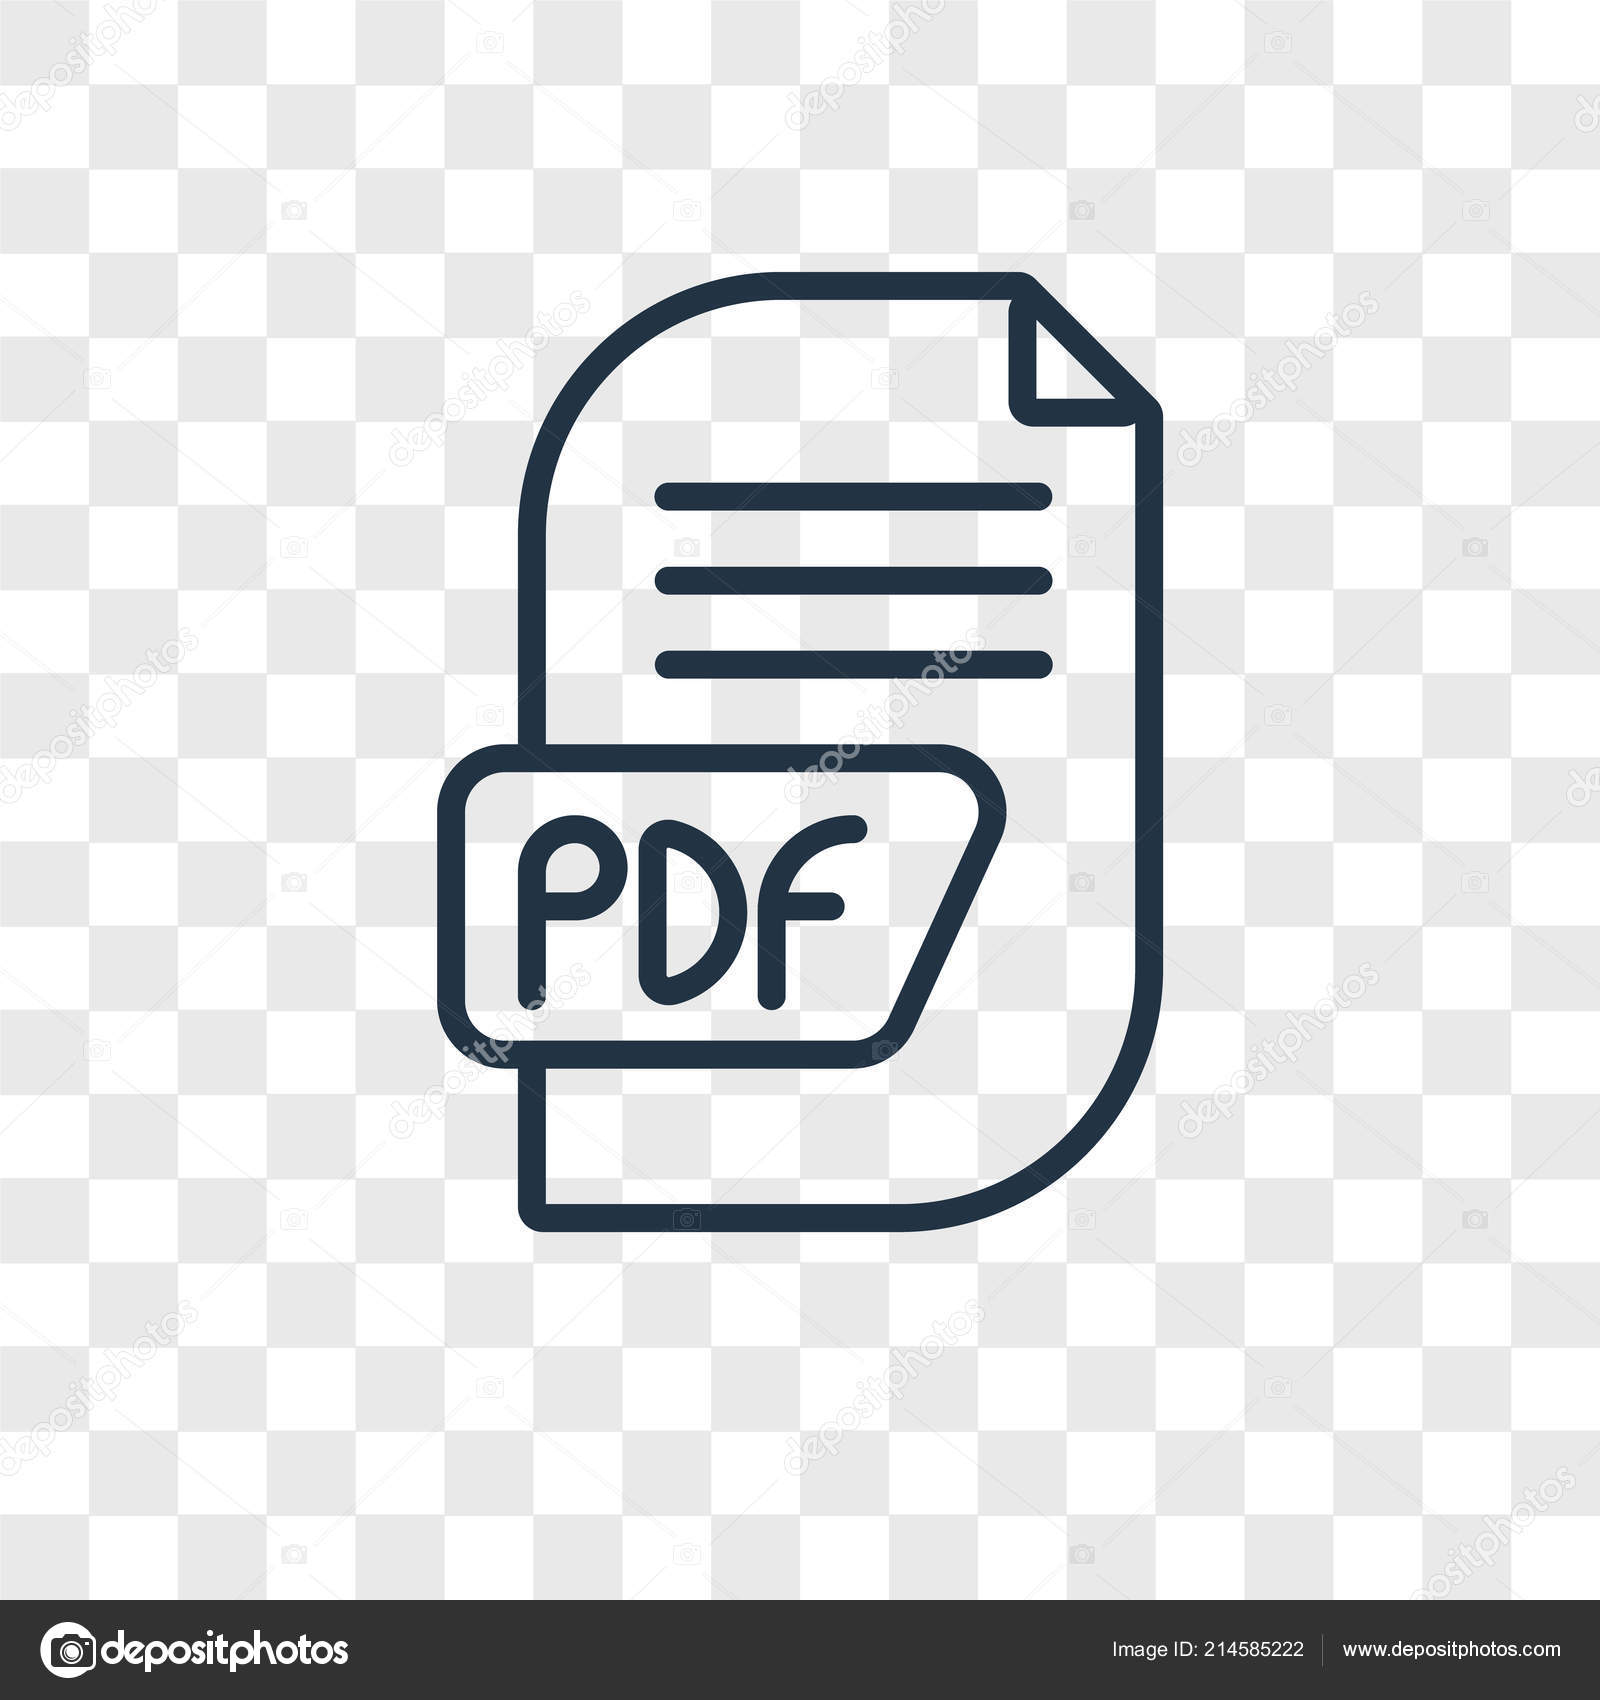 Pdf Vector Icon Isolated Transparent Background Pdf Logo Concept